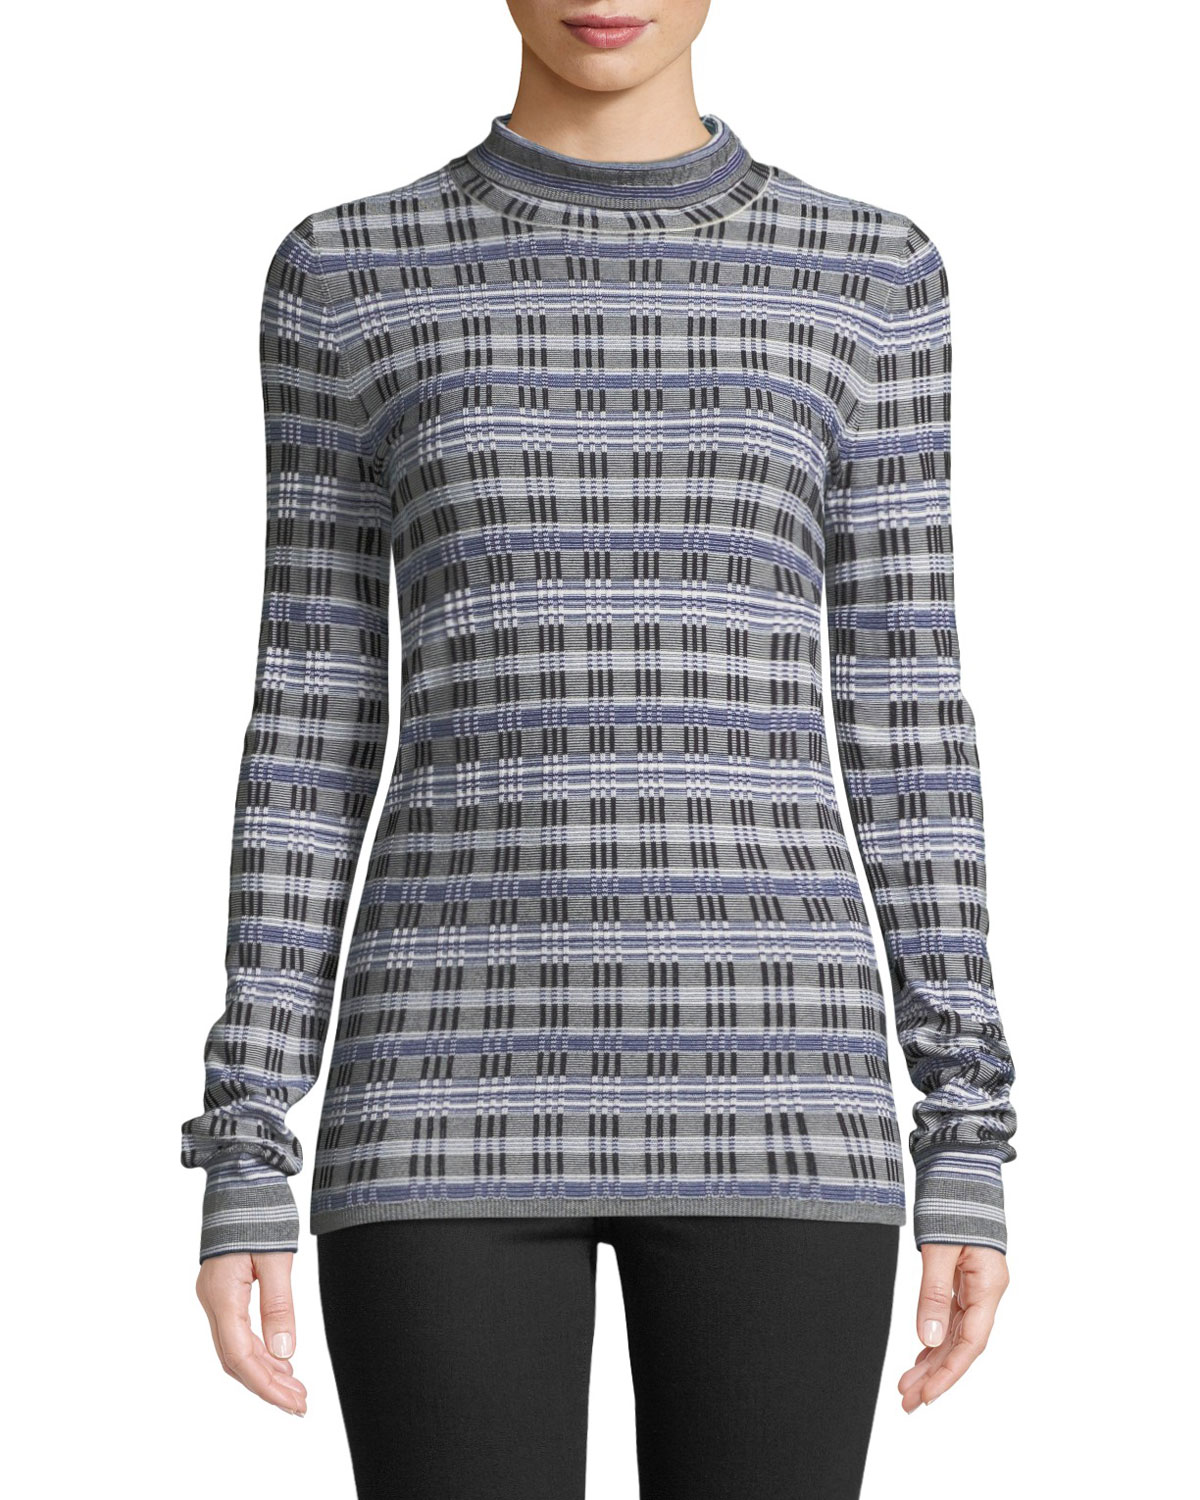 Checked Jacquard-Knit Turtleneck Sweater in Blue